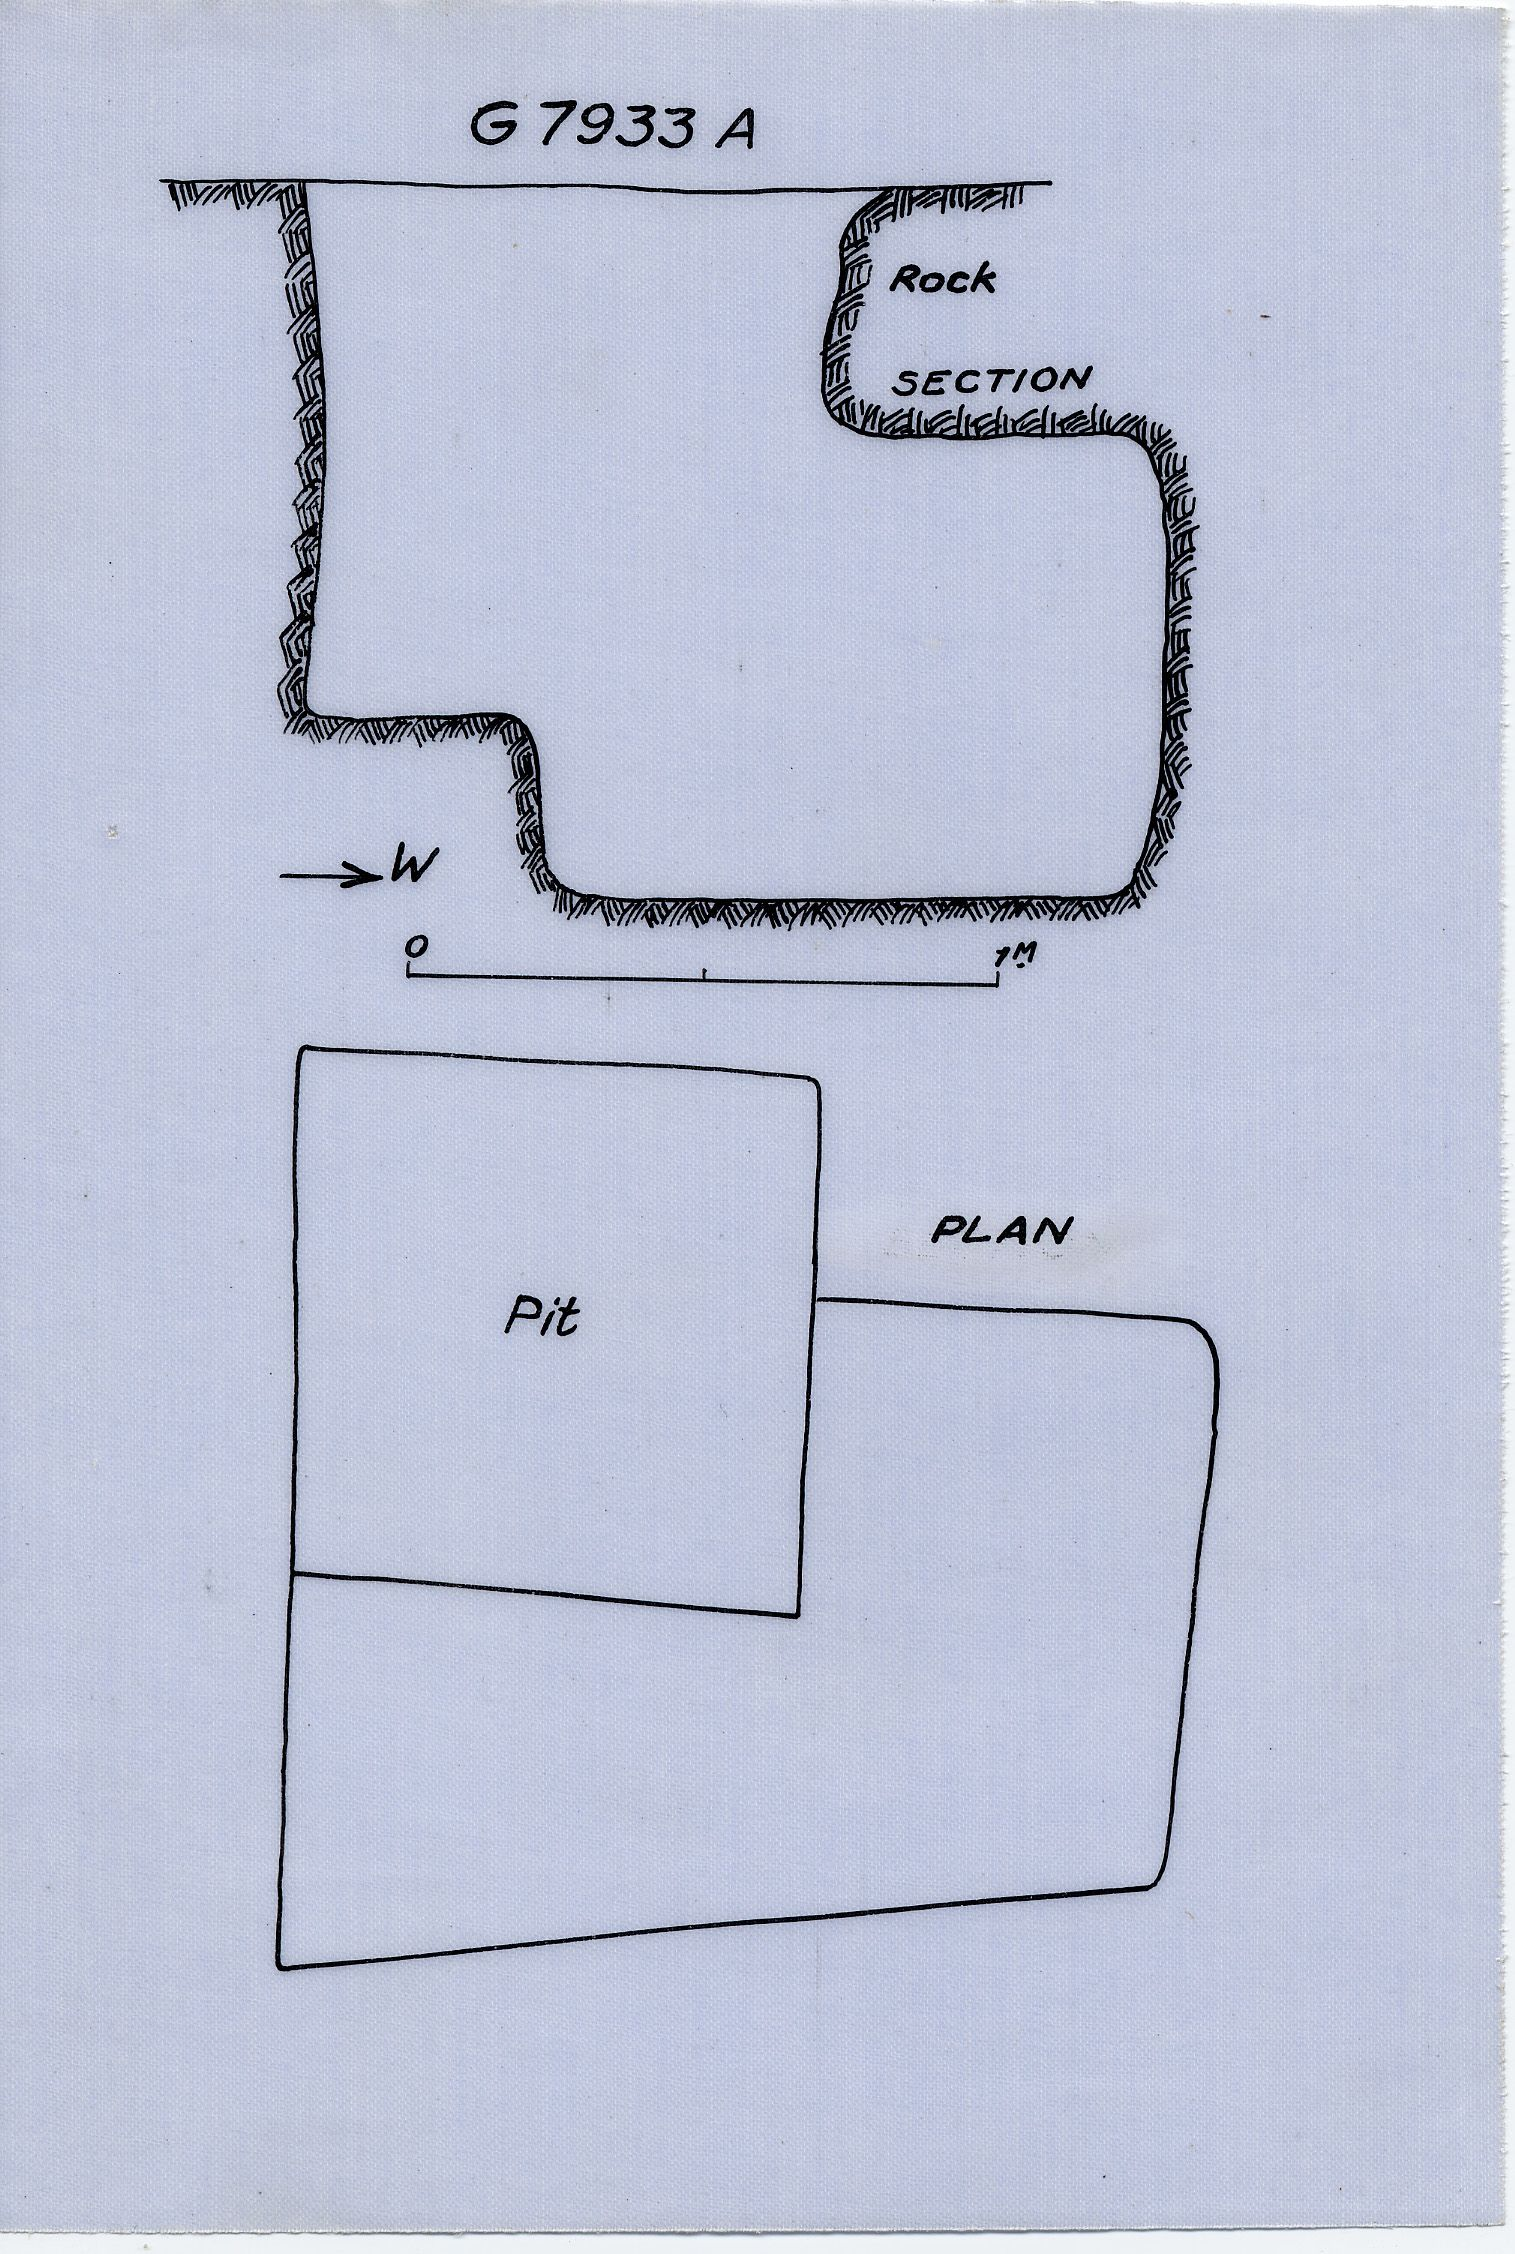 Maps and plans: G 7933, Shaft A